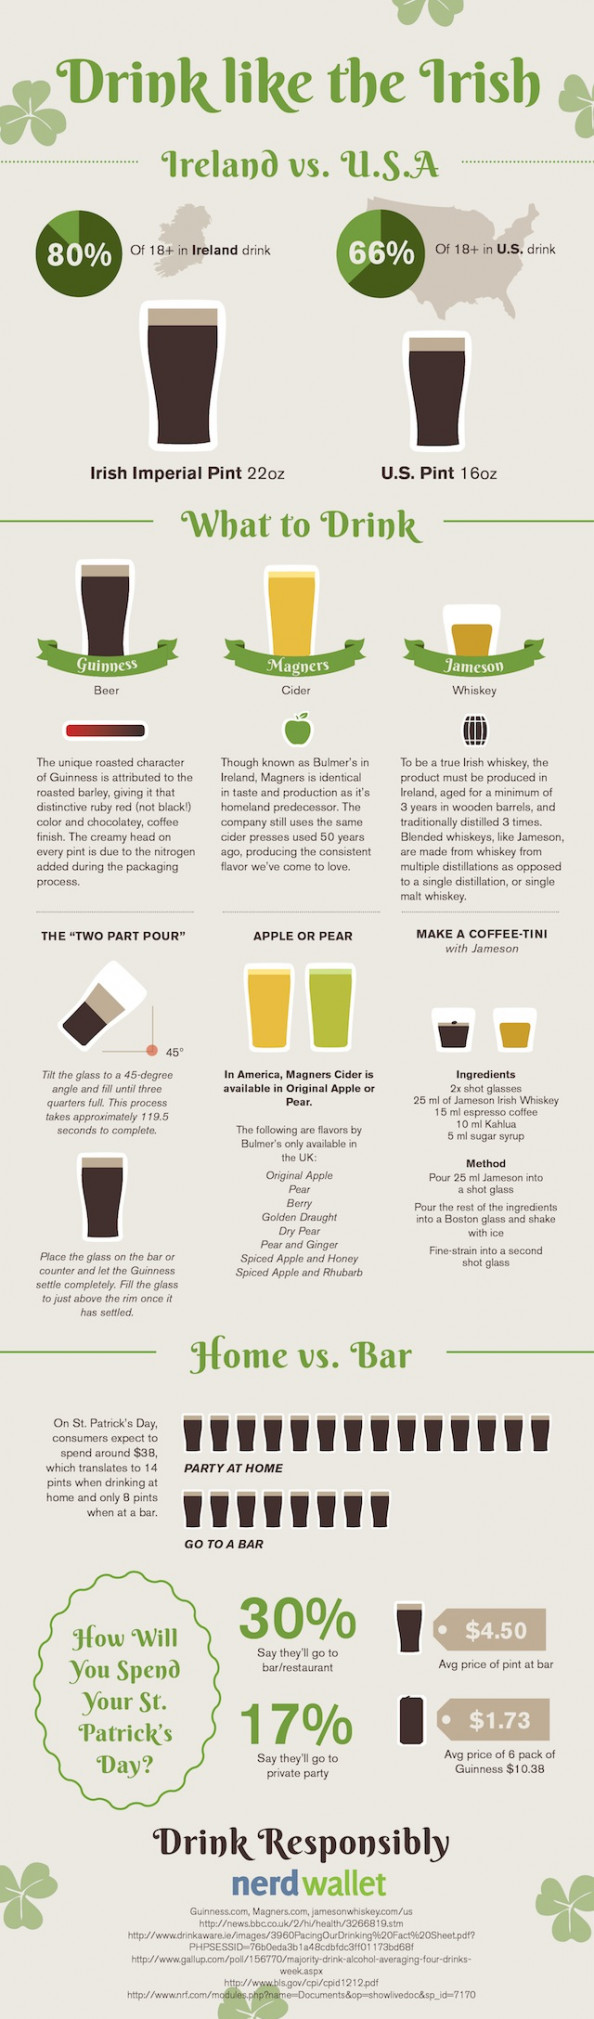 Drink like the Irish Infographic